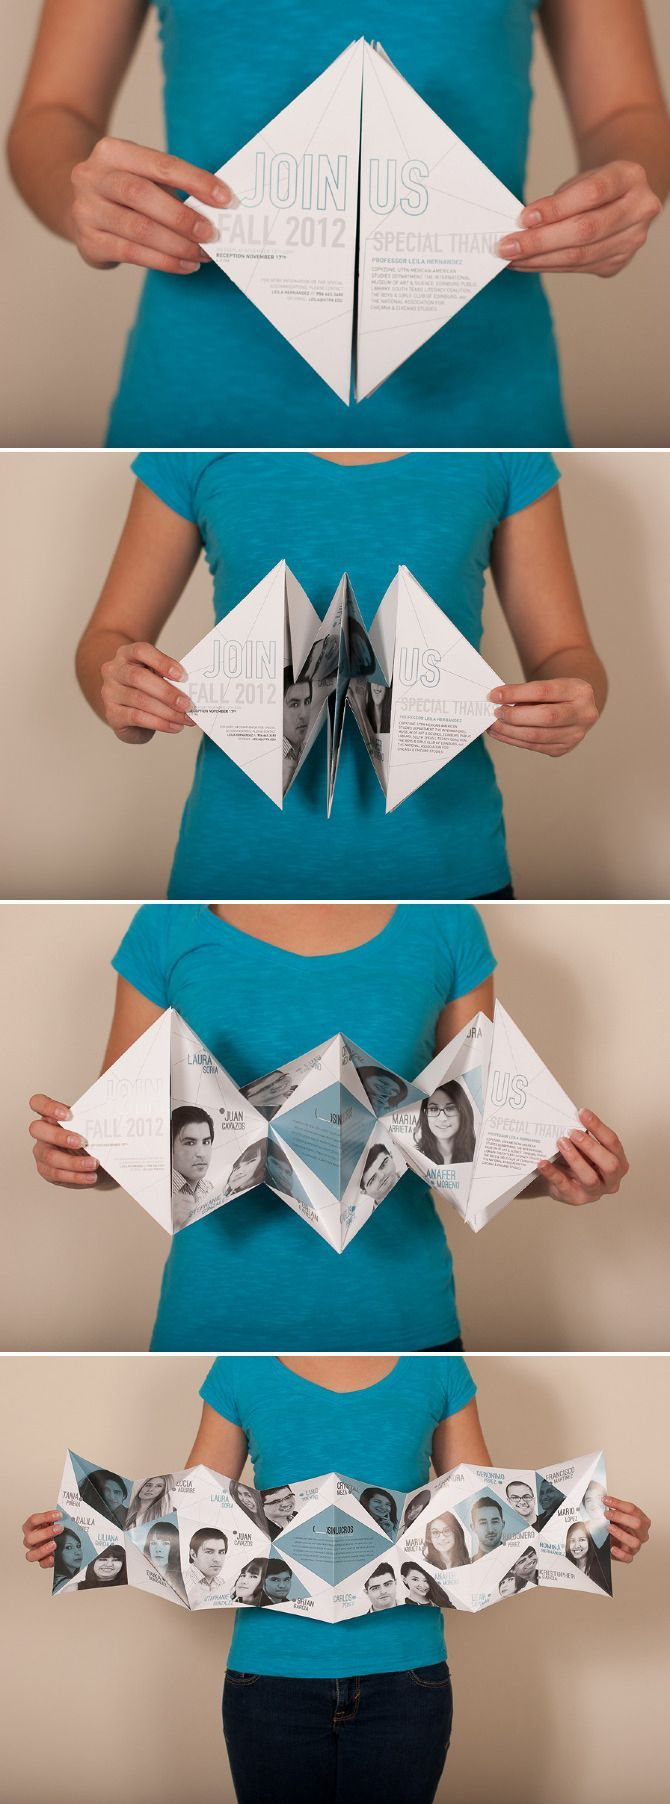 """Sin Lucros BFA Exhibition Invitation << cool fold, no die cut required! (based on """"explosion book"""" fold)"""